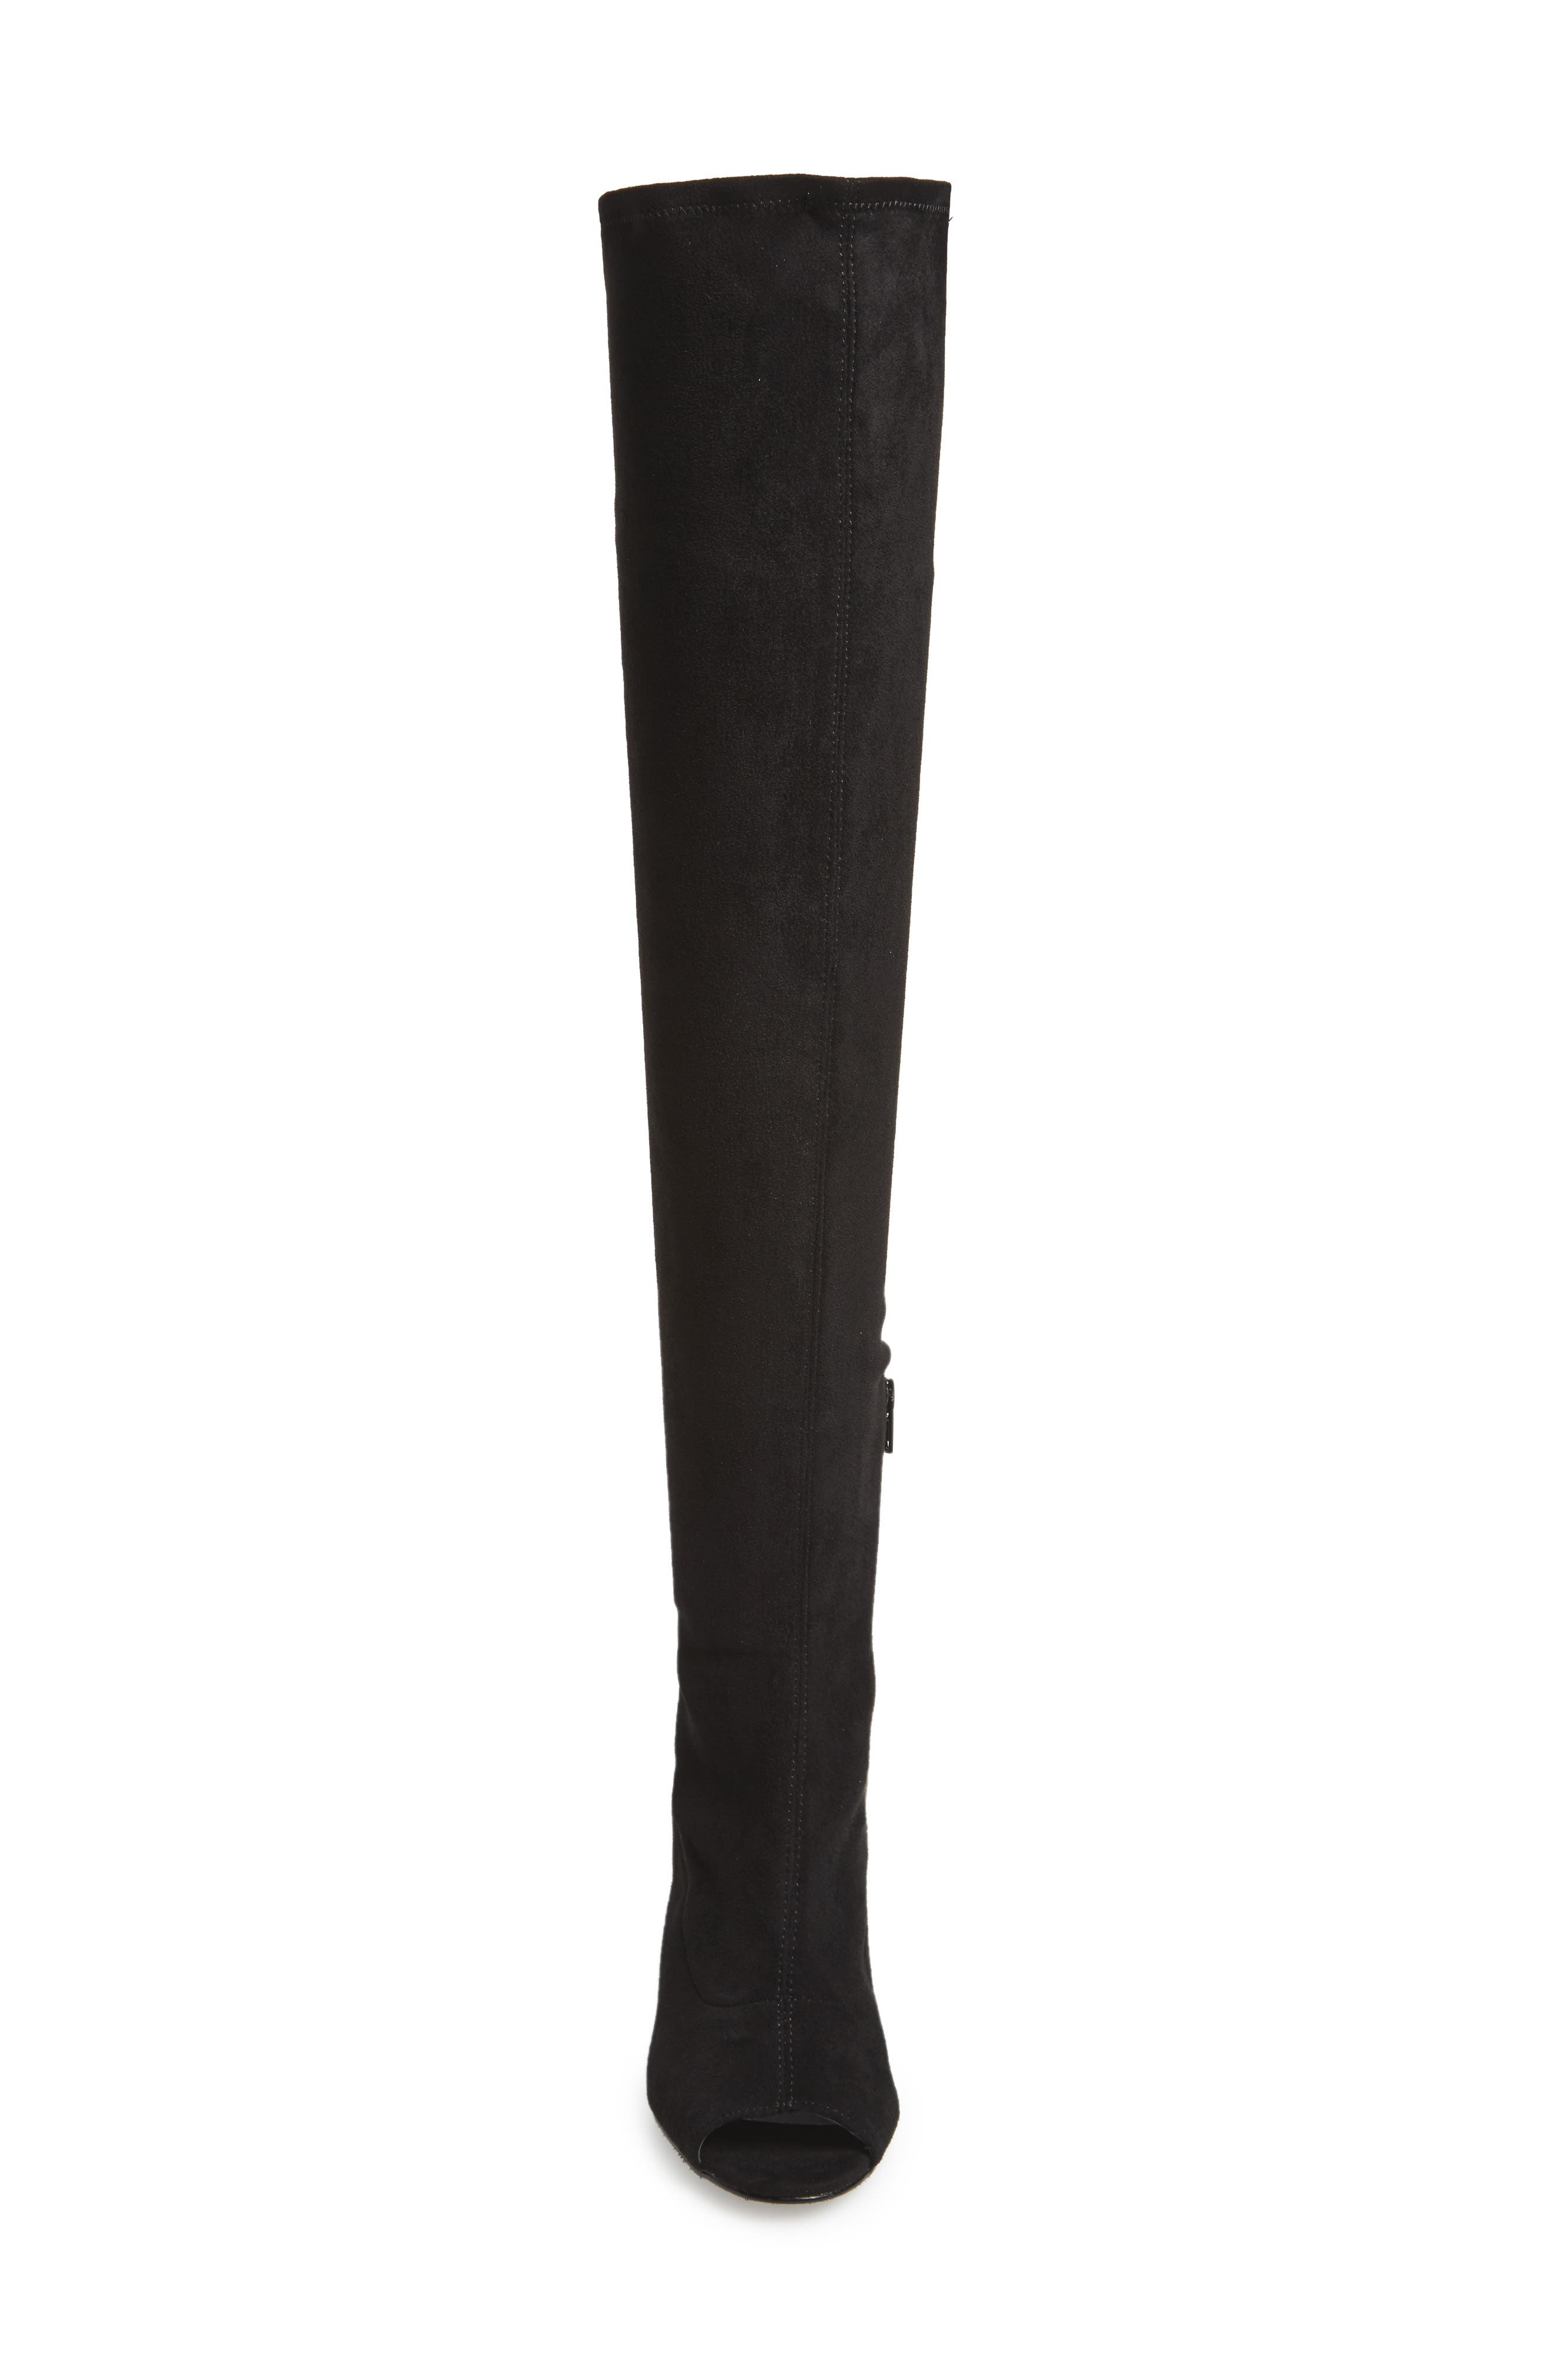 Robyn Cutout Over the Knee Boot,                             Alternate thumbnail 4, color,                             001